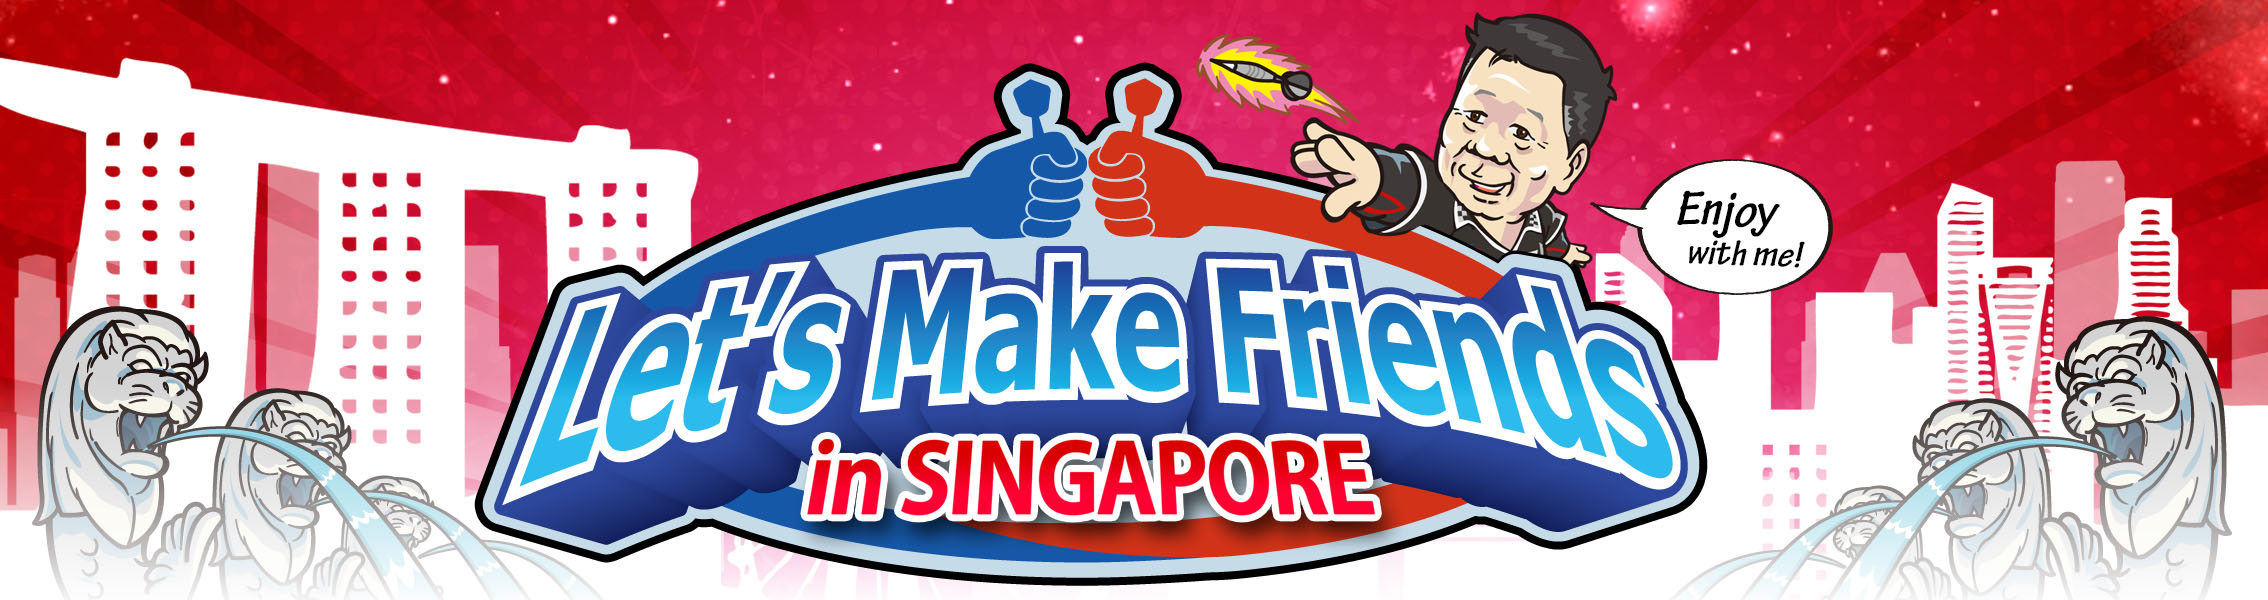 Celebrating SG50 by Lets Make Friends!